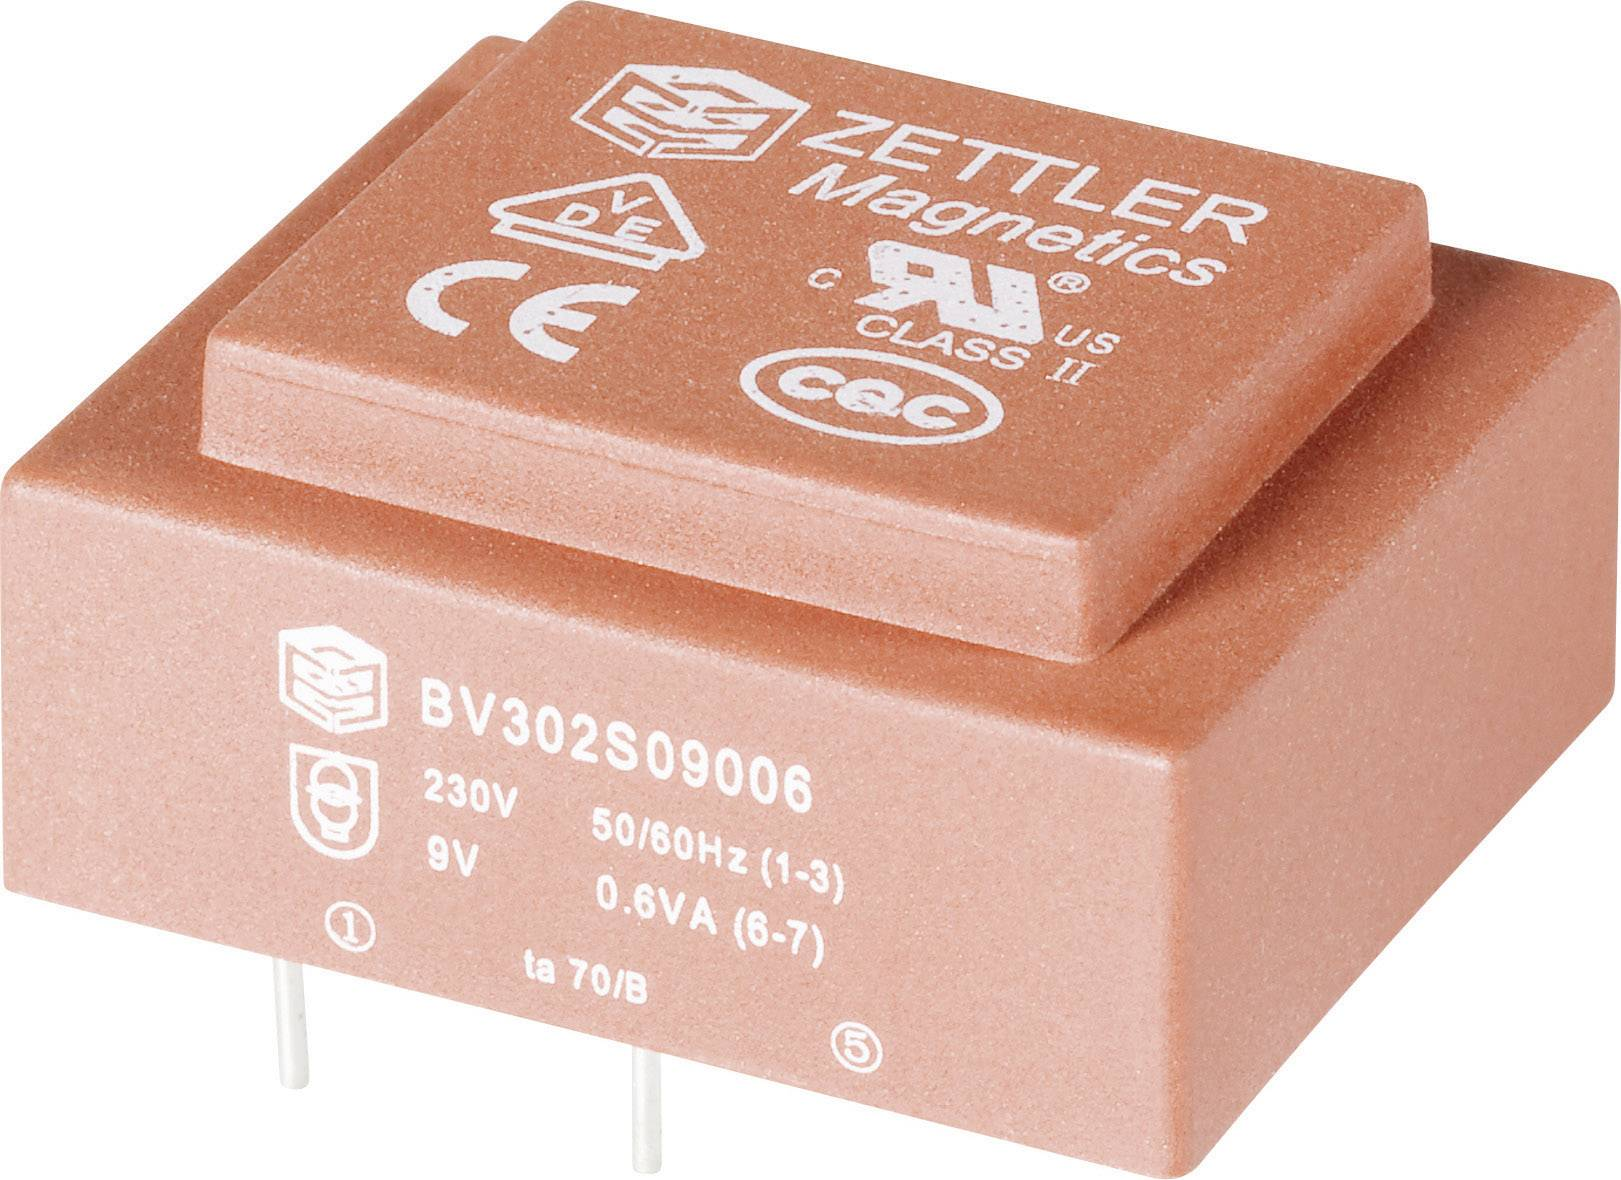 Transformátor do DPS Zettler Magnetics El30, prim: 230 V, Sek: 15 V, 40 mA, 0,6 VA